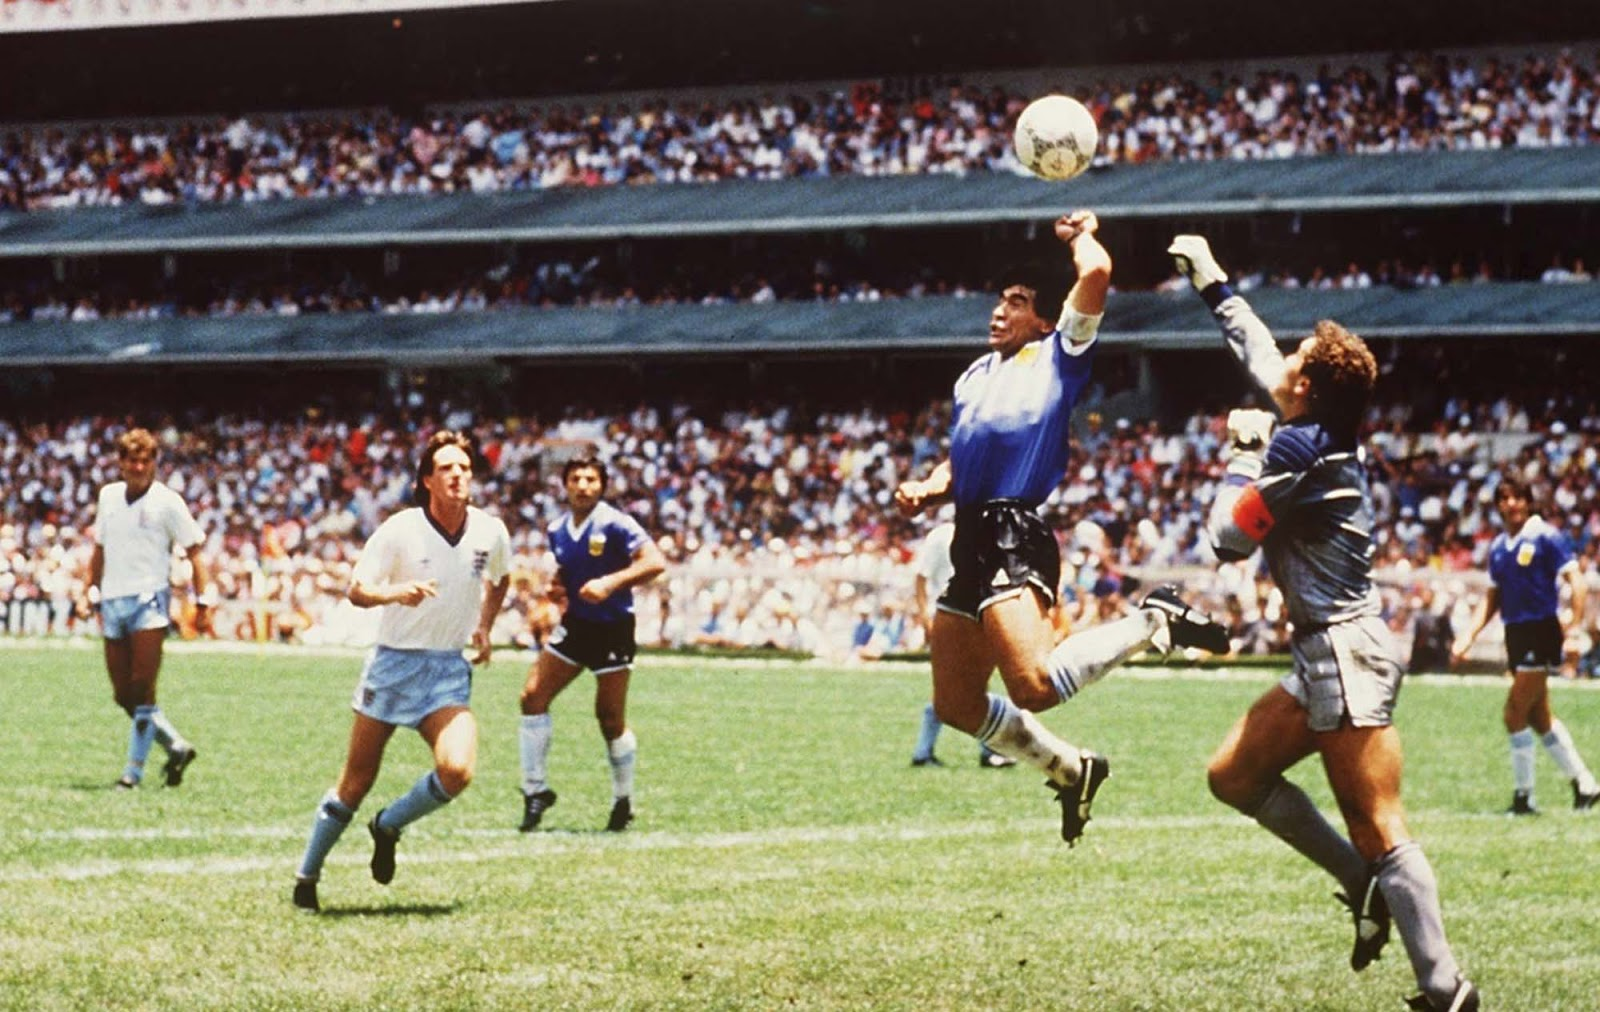 Diego Maradona uses his hand to find a way past England goalkeeper Peter Shilton to open the scoring. 1986.